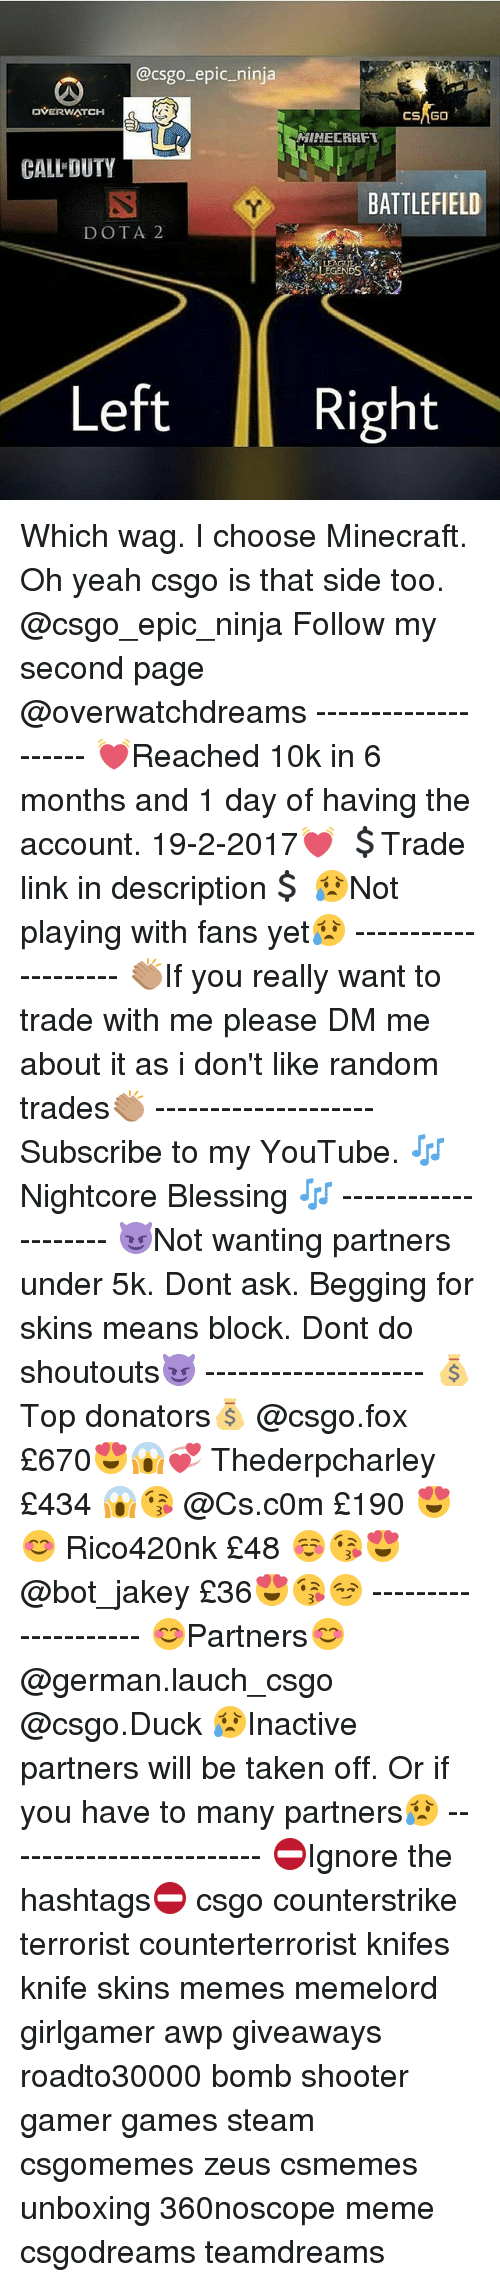 Botting: @csgo epic ninja  DVERWATCH  GO  MIMECRAFT  CALL DUTY  BATTLEFIELD  DOTA 2  Left  Right Which wag. I choose Minecraft. Oh yeah csgo is that side too. @csgo_epic_ninja Follow my second page @overwatchdreams -------------------- 💓Reached 10k in 6 months and 1 day of having the account. 19-2-2017💓 💲Trade link in description💲 😥Not playing with fans yet😥 -------------------- 👏🏽If you really want to trade with me please DM me about it as i don't like random trades👏🏽 -------------------- Subscribe to my YouTube. 🎶Nightcore Blessing 🎶 -------------------- 😈Not wanting partners under 5k. Dont ask. Begging for skins means block. Dont do shoutouts😈 -------------------- 💰Top donators💰 @csgo.fox £670😍😱💞 Thederpcharley £434 😱😘 @Cs.c0m £190 😍😊 Rico420nk £48 ☺😘😍 @bot_jakey £36😍😘😏 -------------------- 😊Partners😊 @german.lauch_csgo @csgo.Duck 😥Inactive partners will be taken off. Or if you have to many partners😥 ------------------------ ⛔Ignore the hashtags⛔ csgo counterstrike terrorist counterterrorist knifes knife skins memes memelord girlgamer awp giveaways roadto30000 bomb shooter gamer games steam csgomemes zeus csmemes unboxing 360noscope meme csgodreams teamdreams